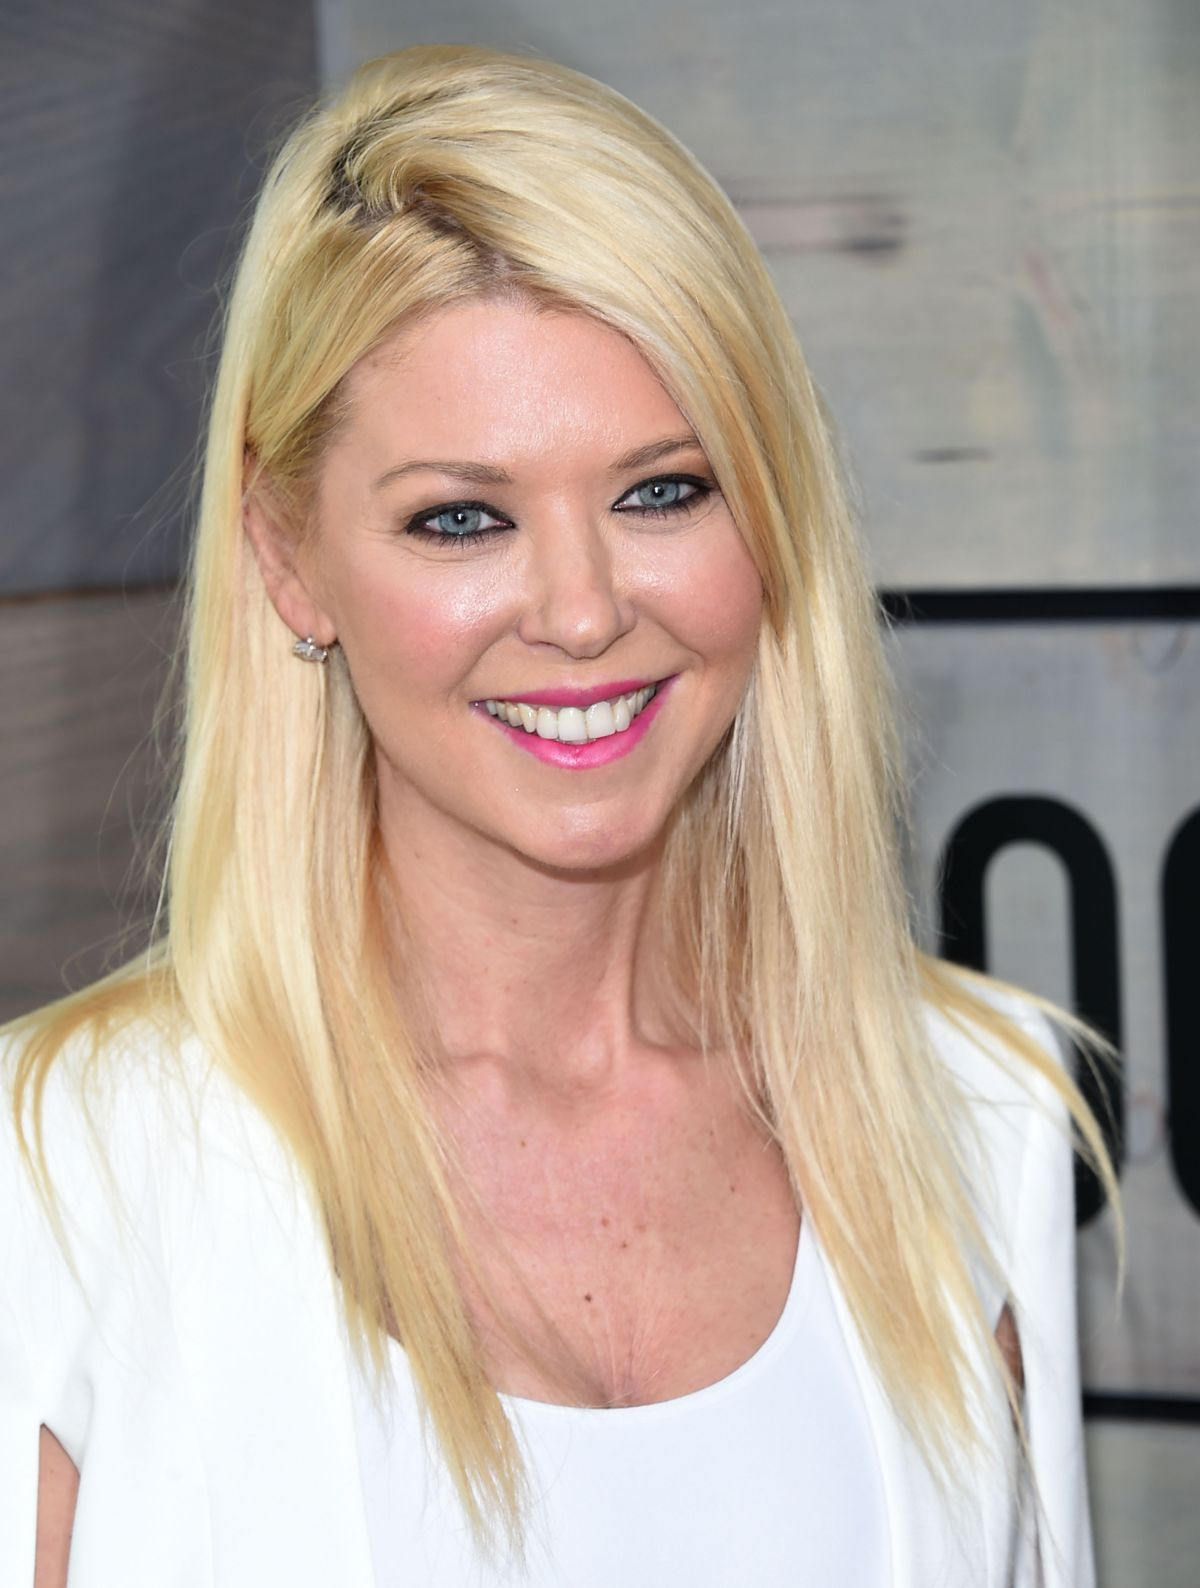 tara reid how tall